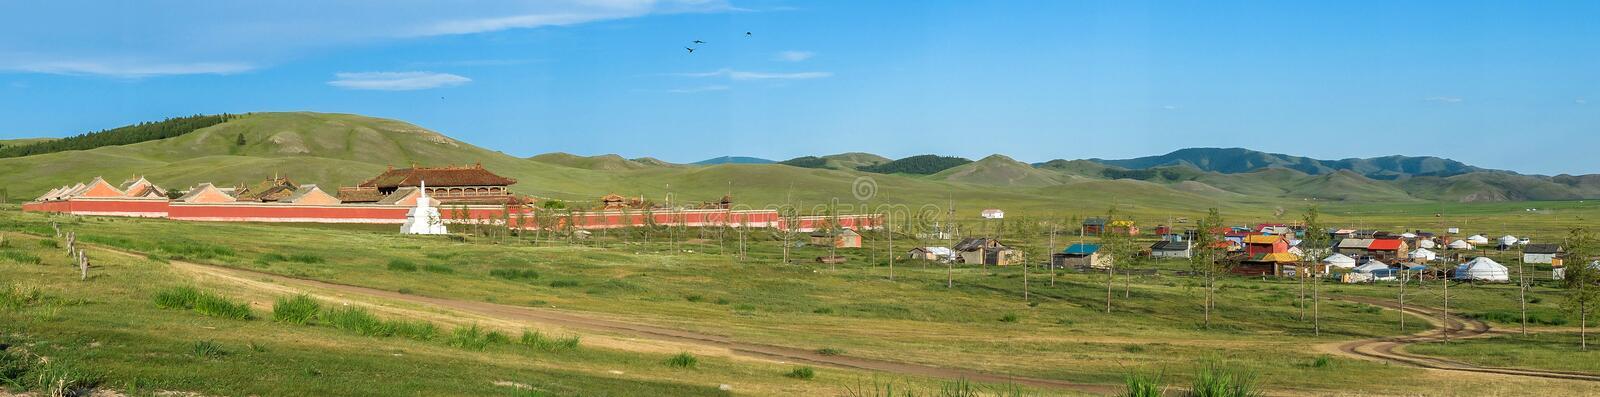 Amarbayasgalantklooster in Mongolië stock foto